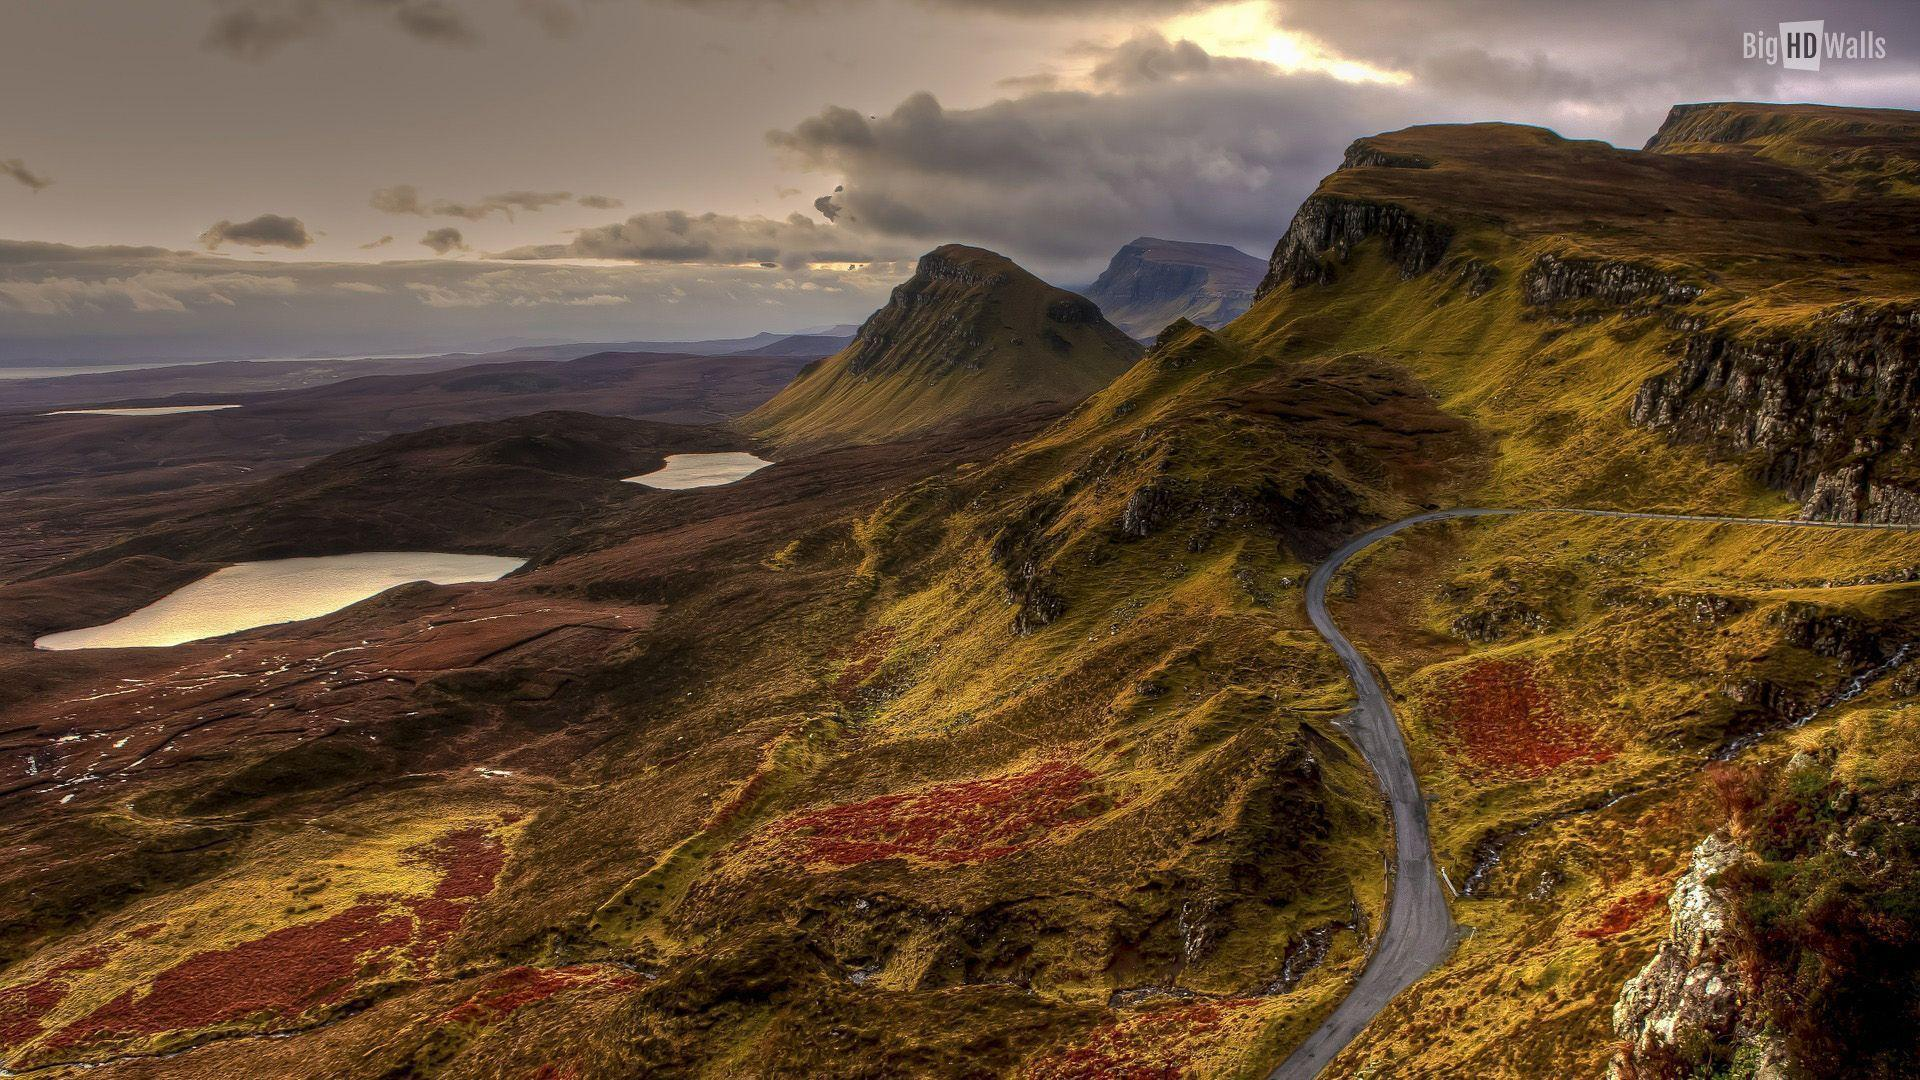 10 awesome Landscape Pictures from Scotland | BigHDWalls